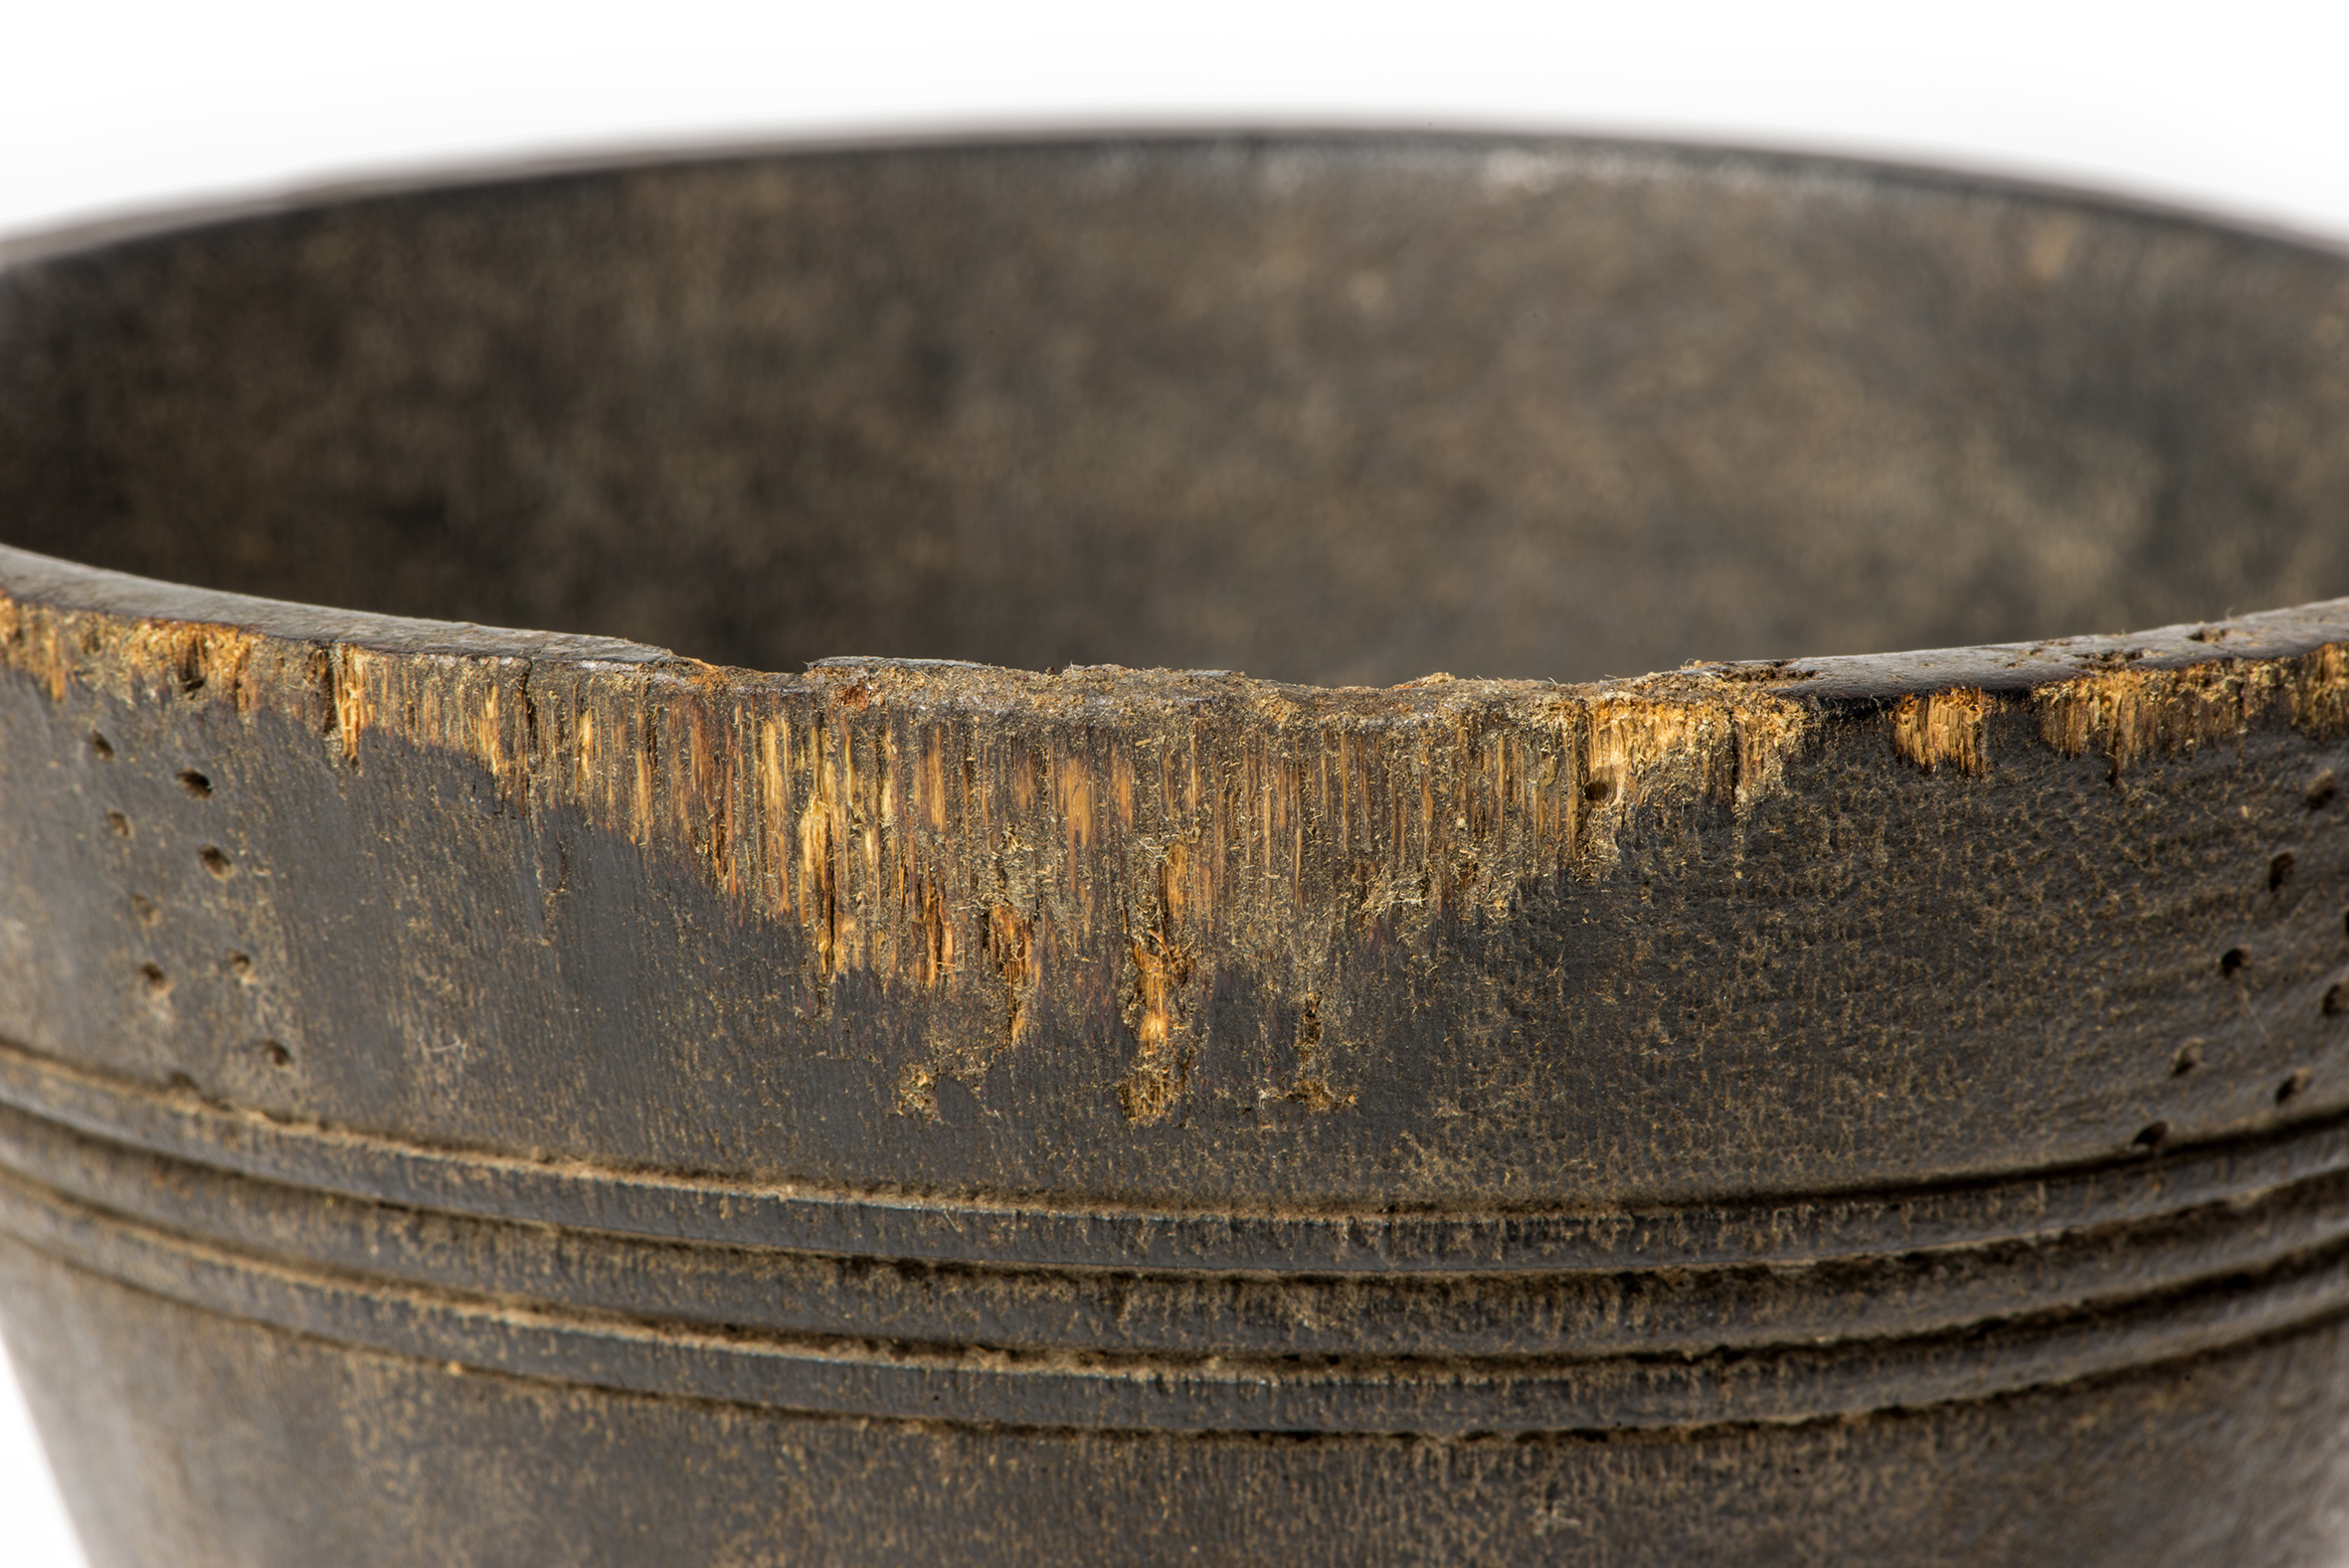 Figure 2: Abrasion damages on the external upper part of the cup showing the fibrous texture of the material. Photo E. Disner.